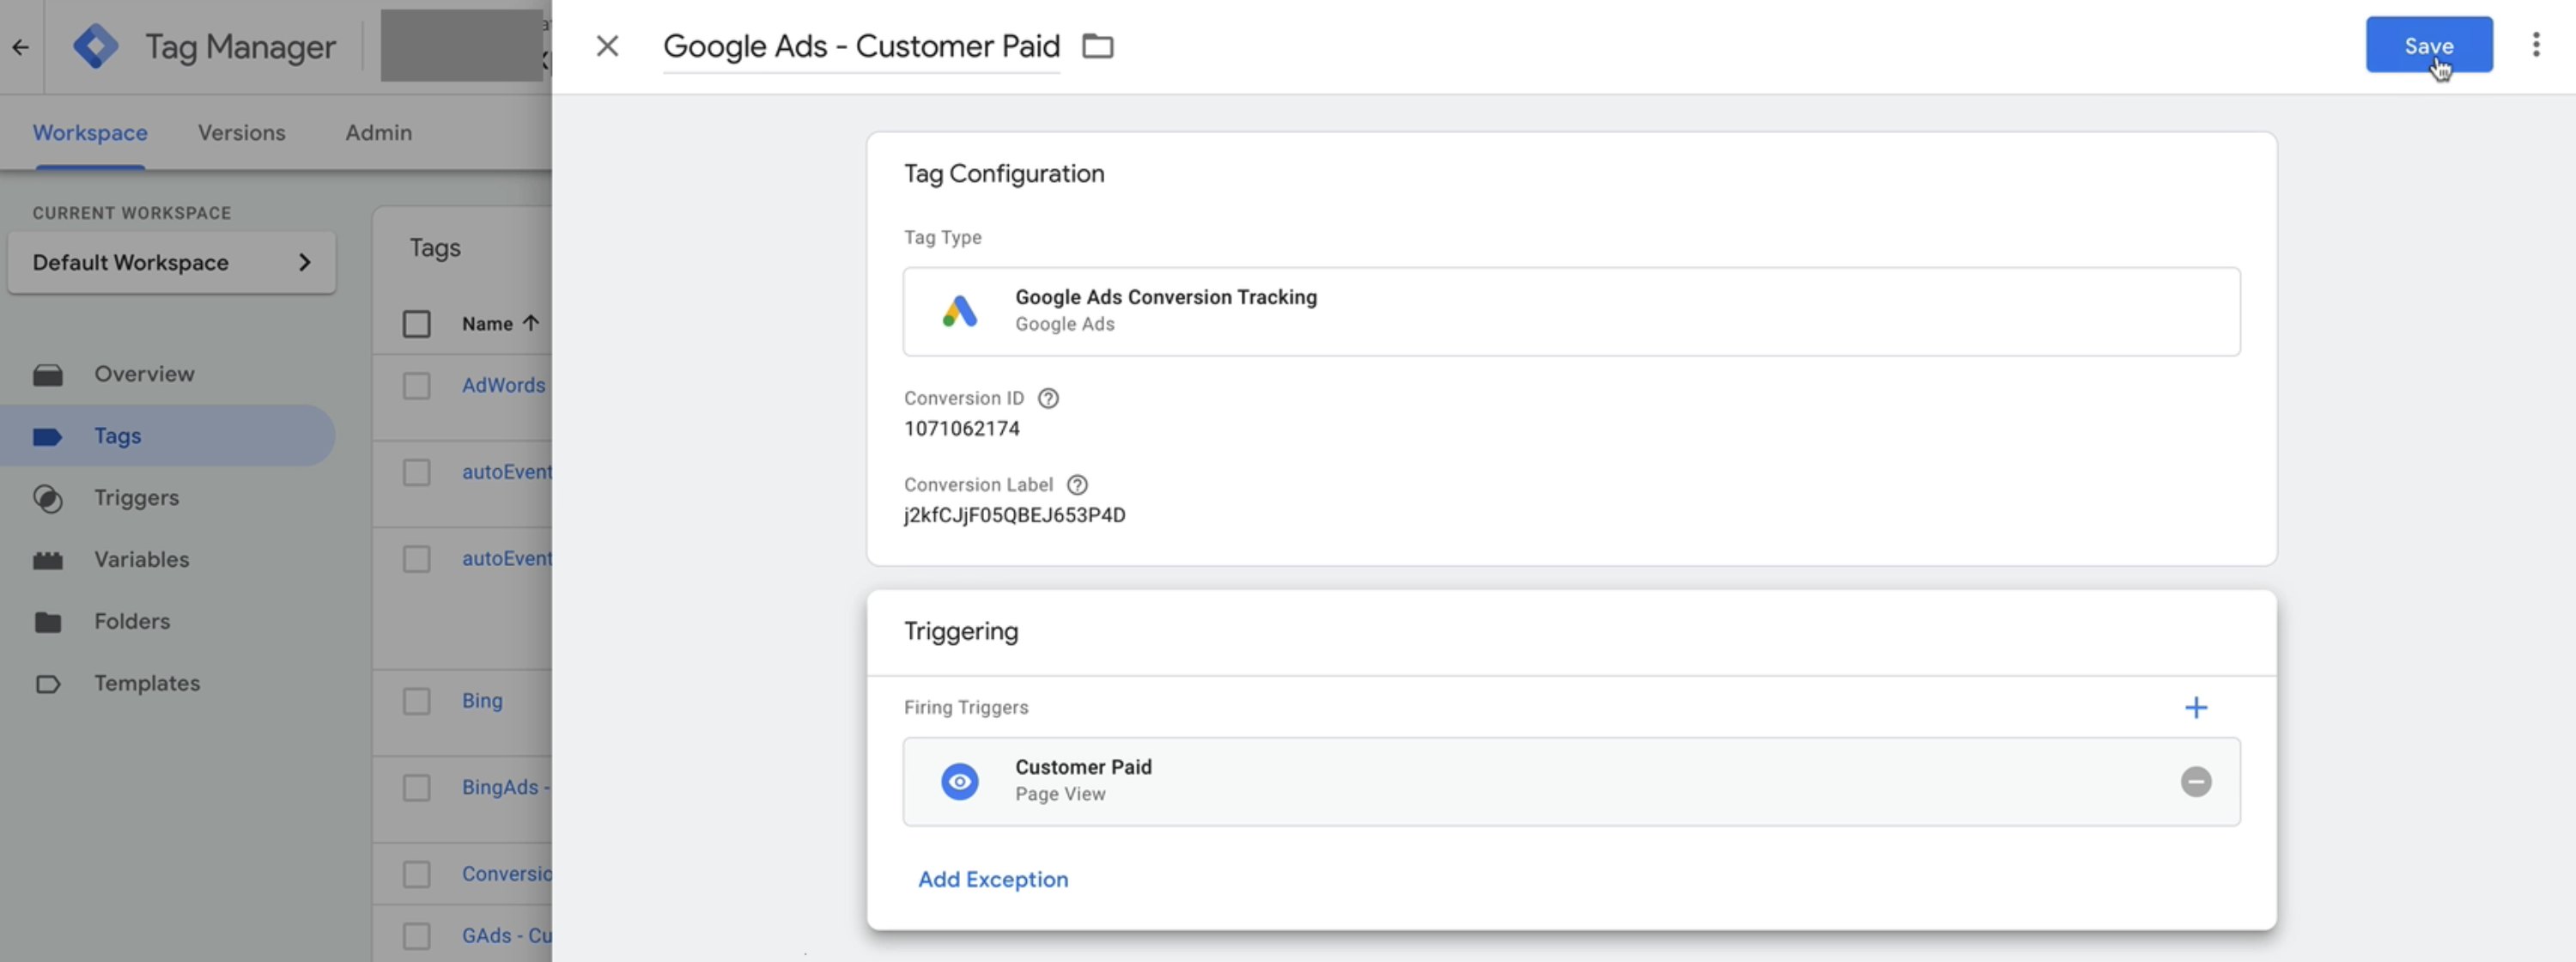 A new tag screen in Google Tag Manager